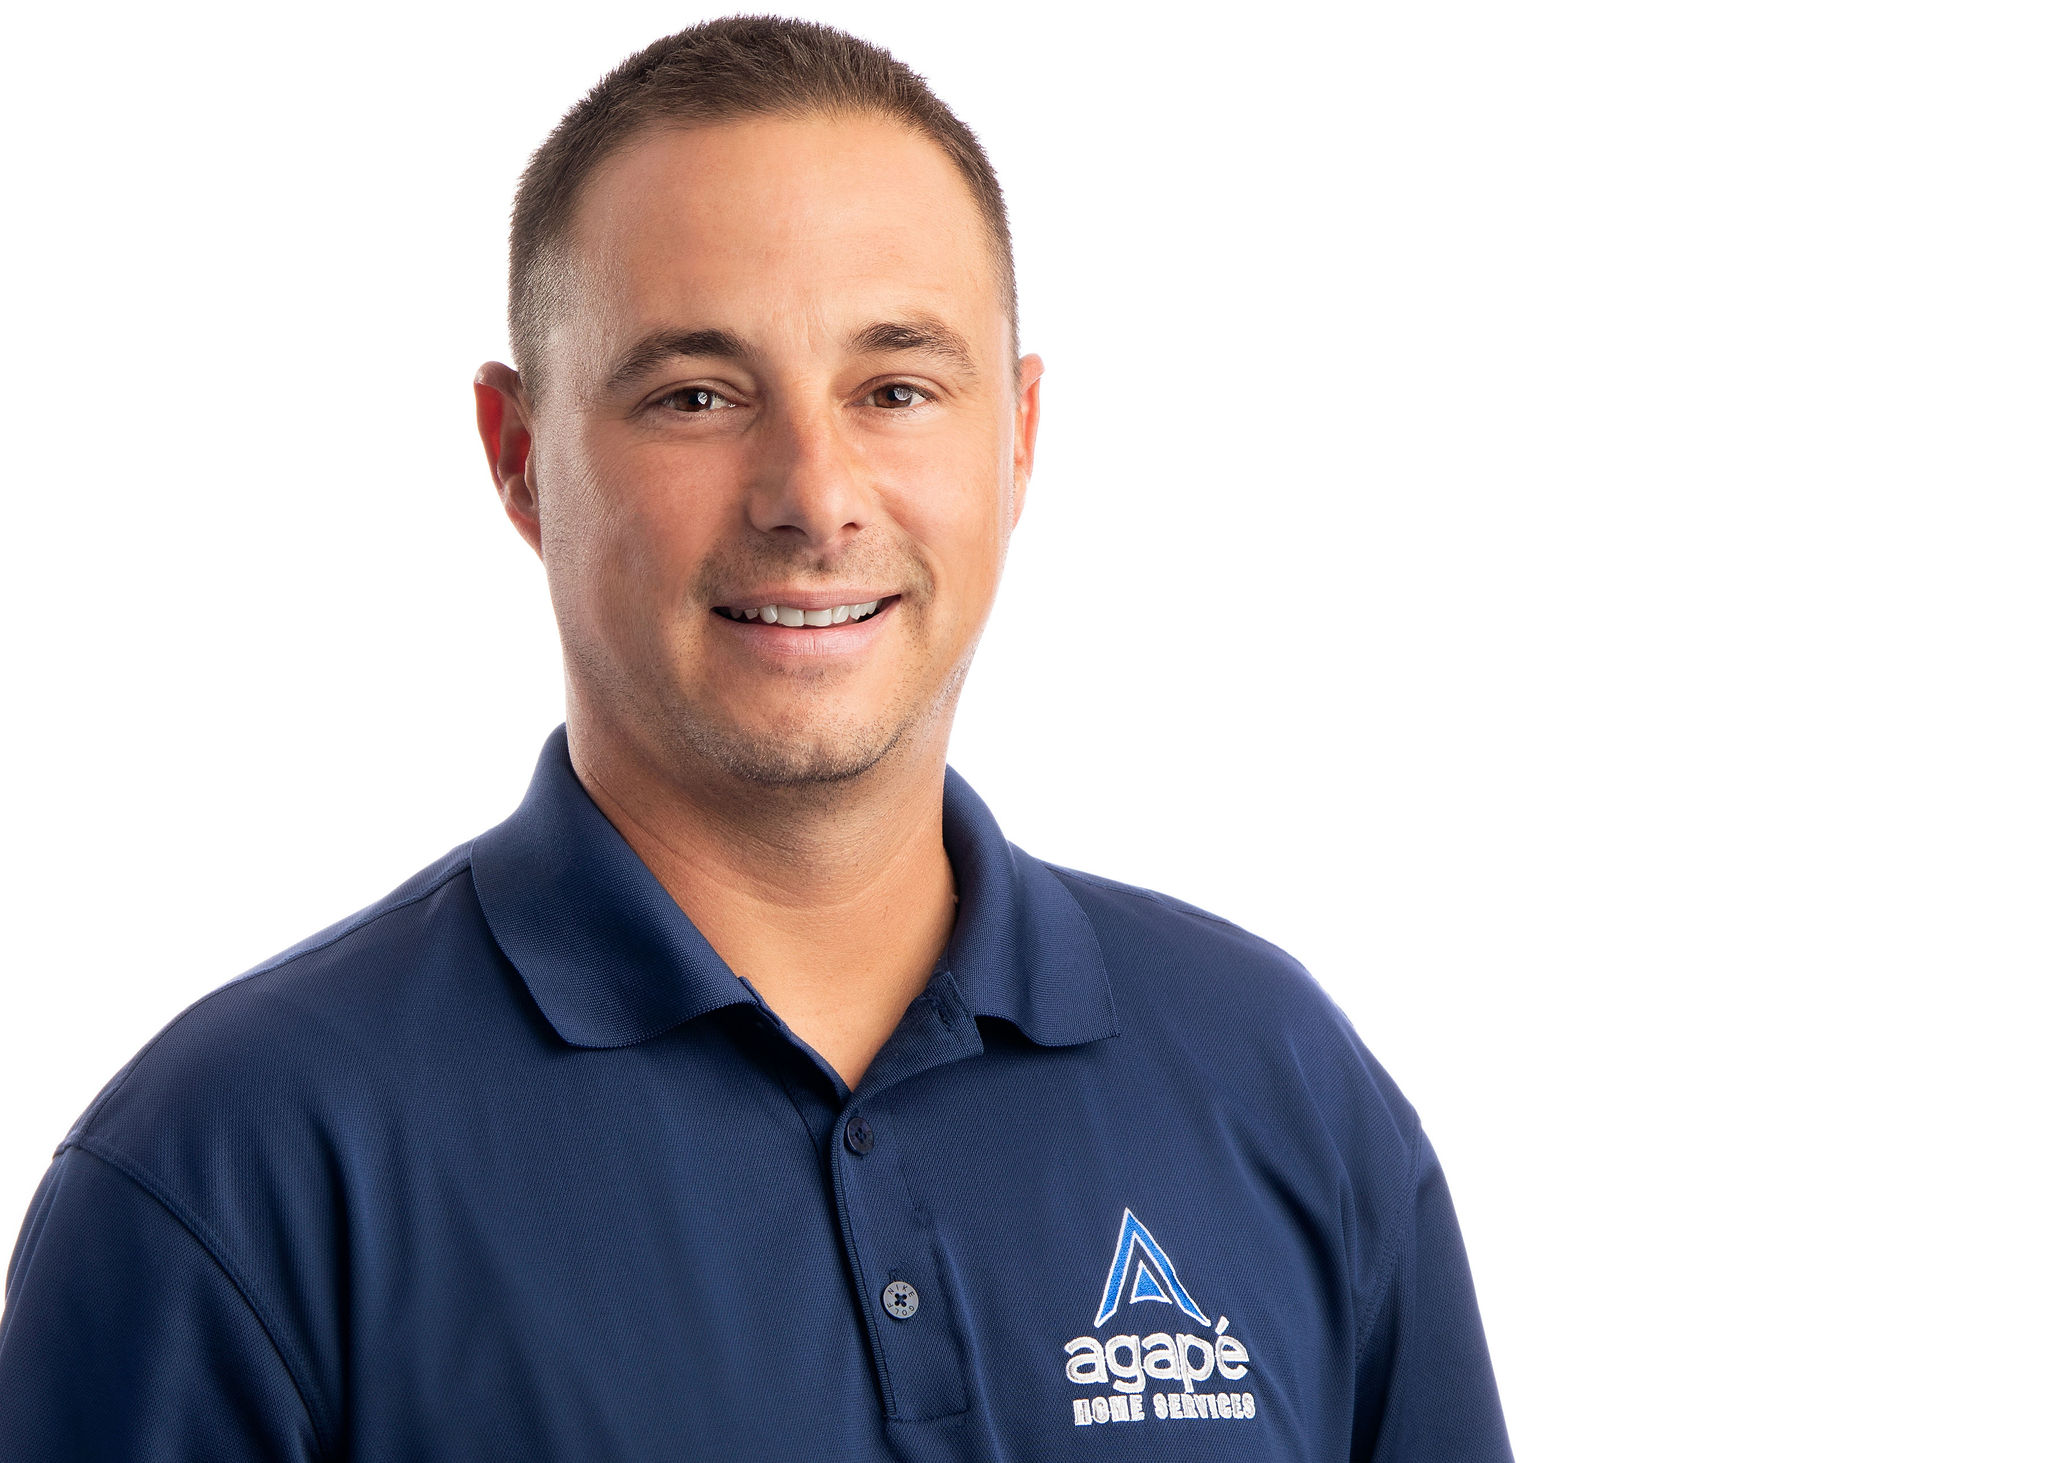 jeff watson sales manager co owner